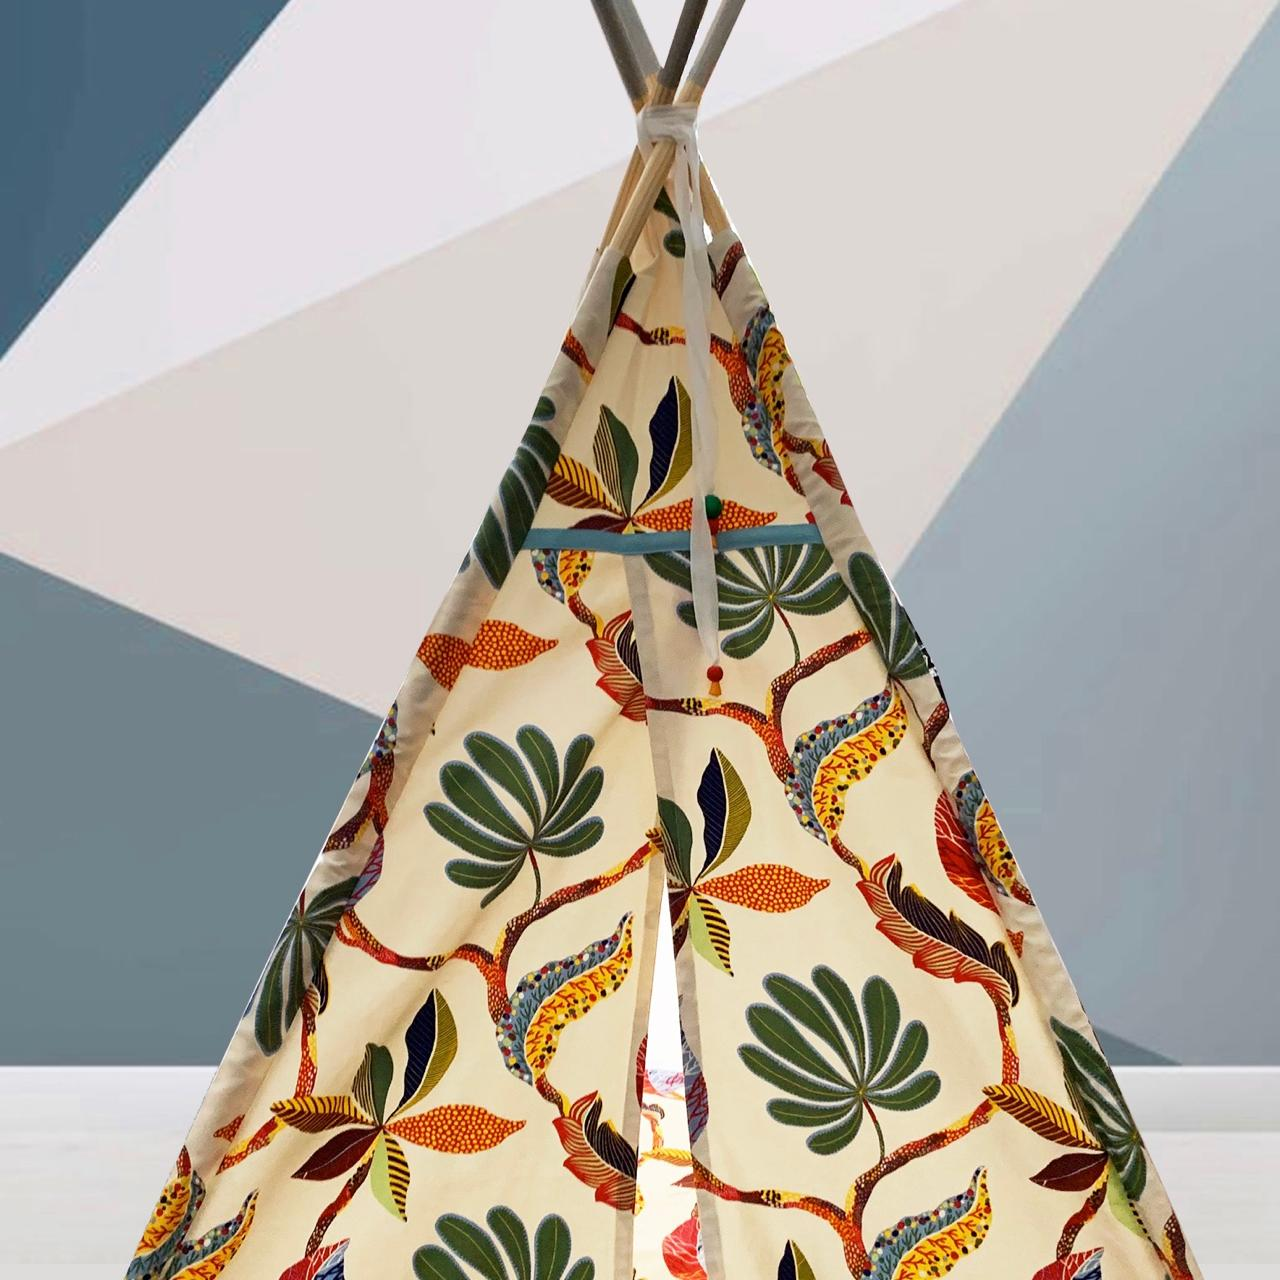 Jungle motif teepee for sale